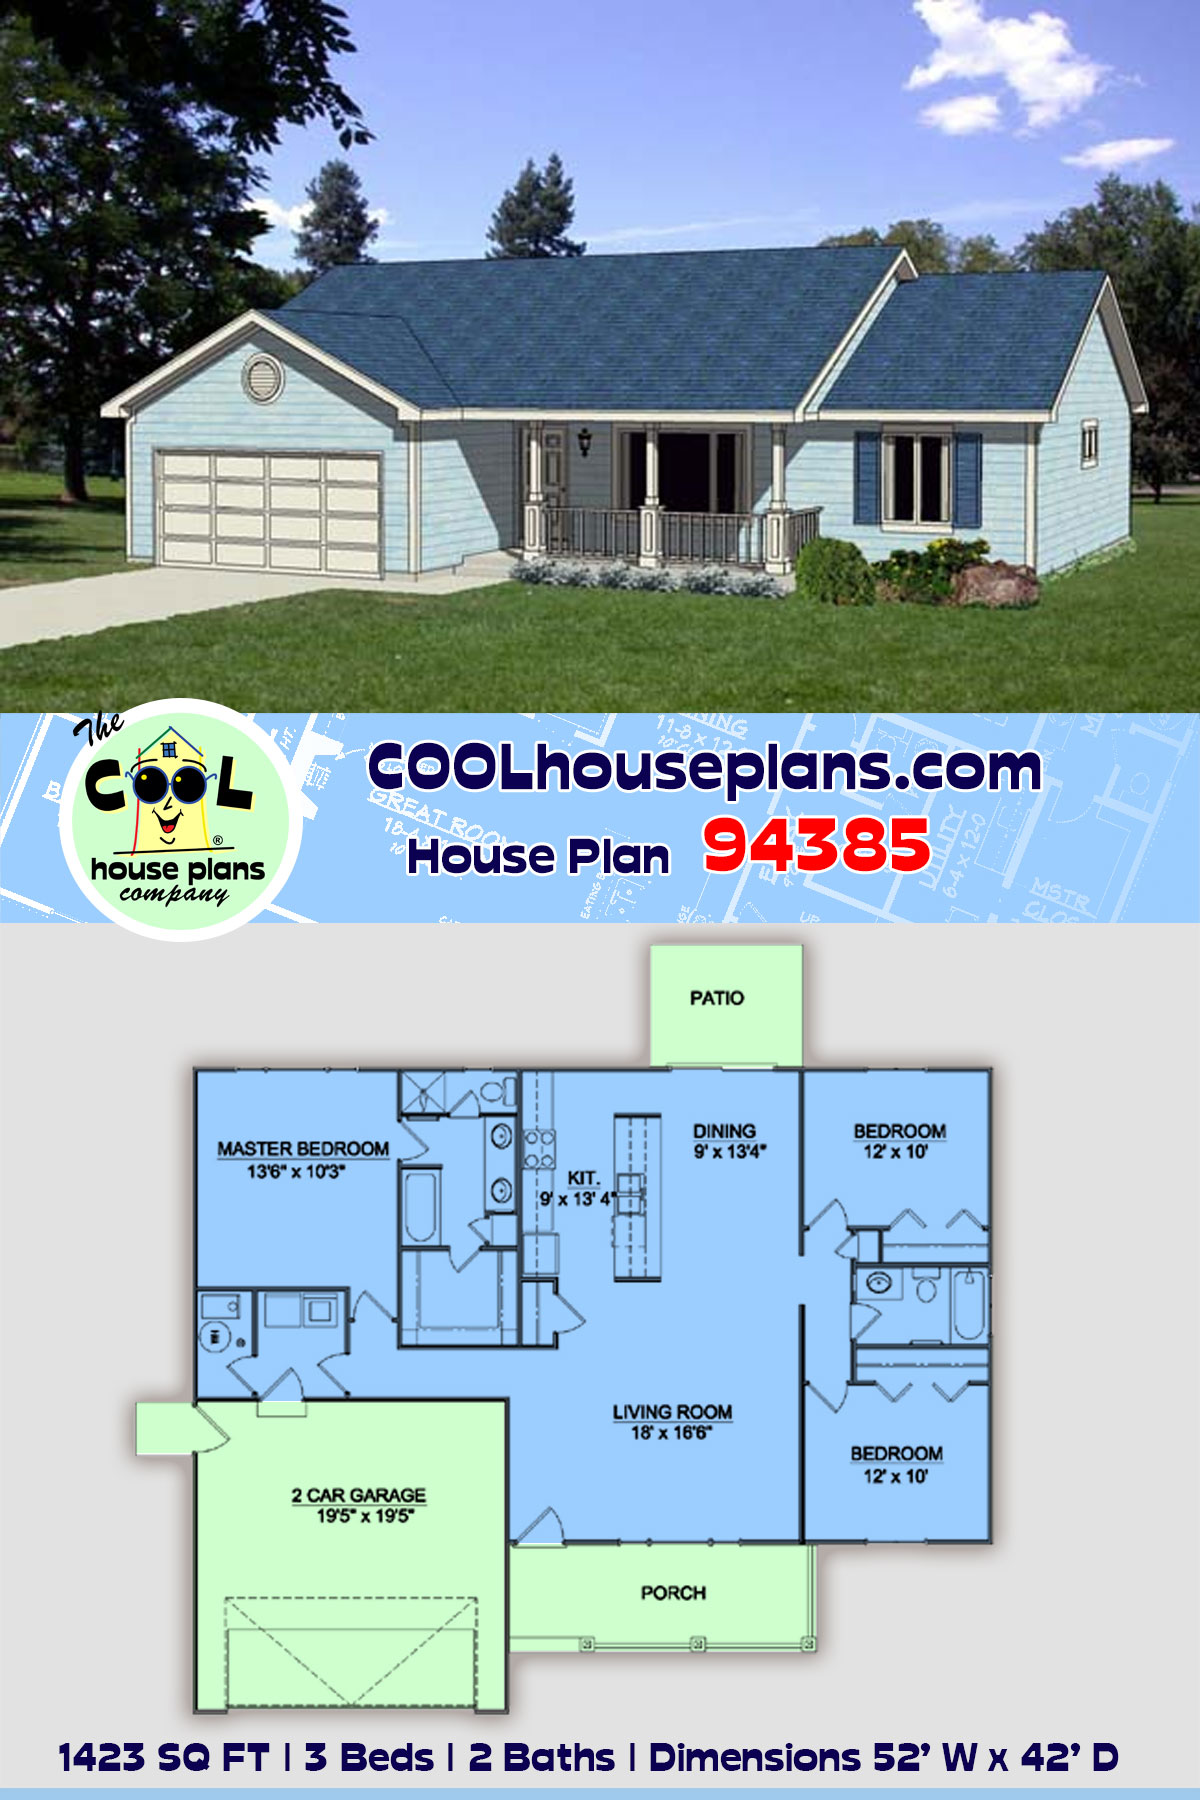 Ranch, Traditional House Plan 94385 with 3 Beds, 2 Baths, 2 Car Garage